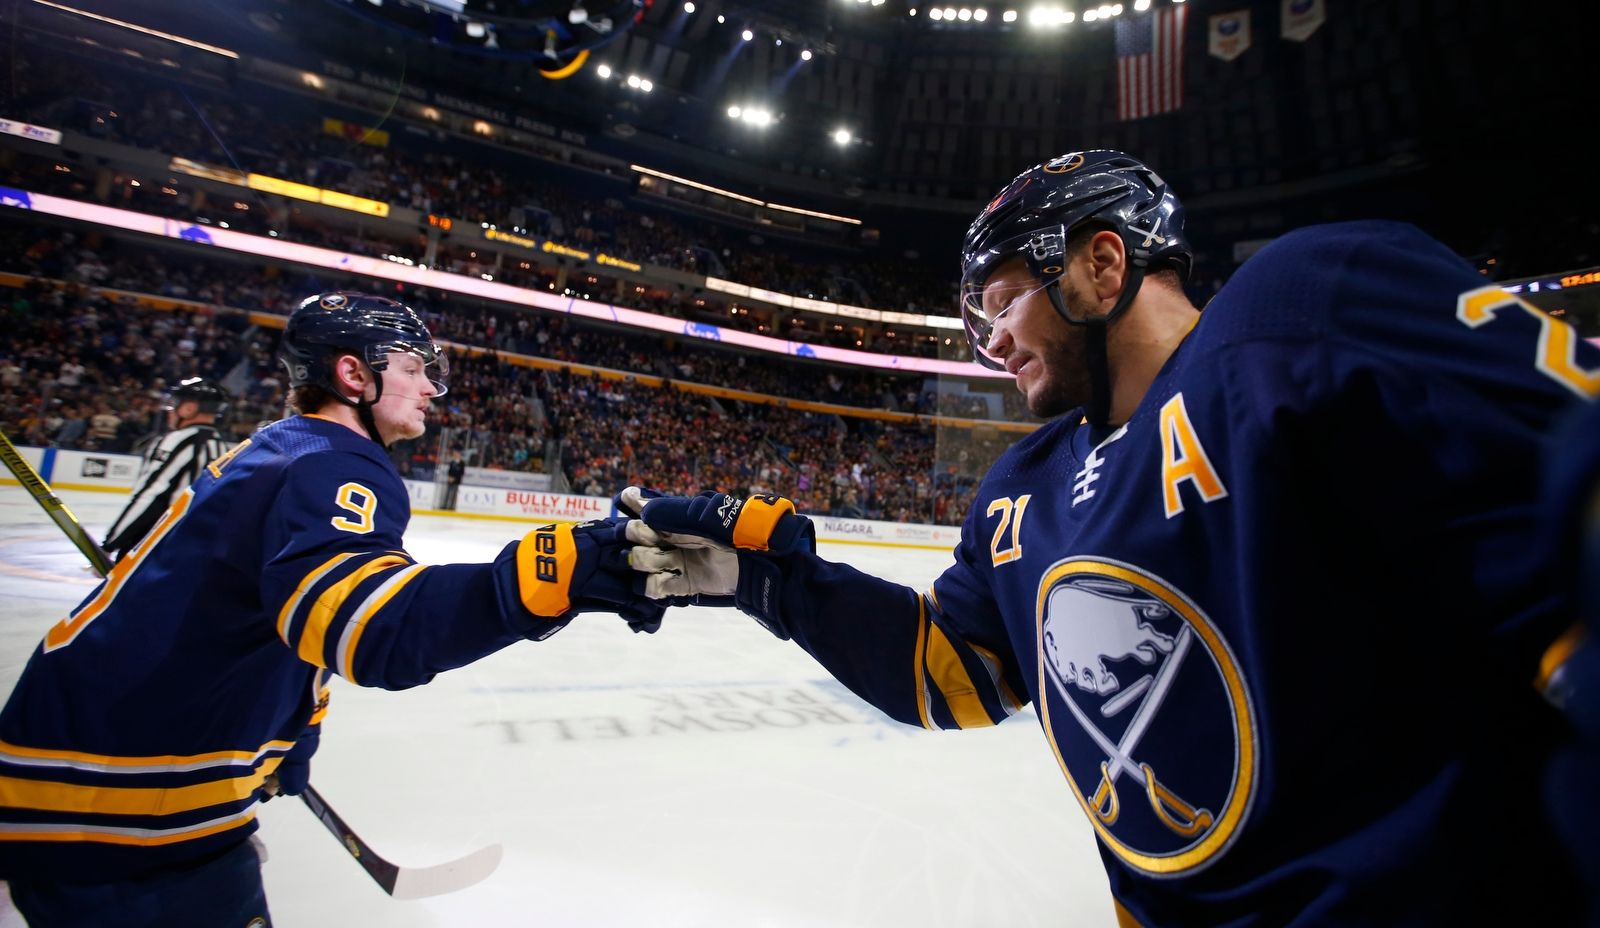 Sabres' Jack Eichel is congratulated on his goal by Kyle Okposo during the first period.